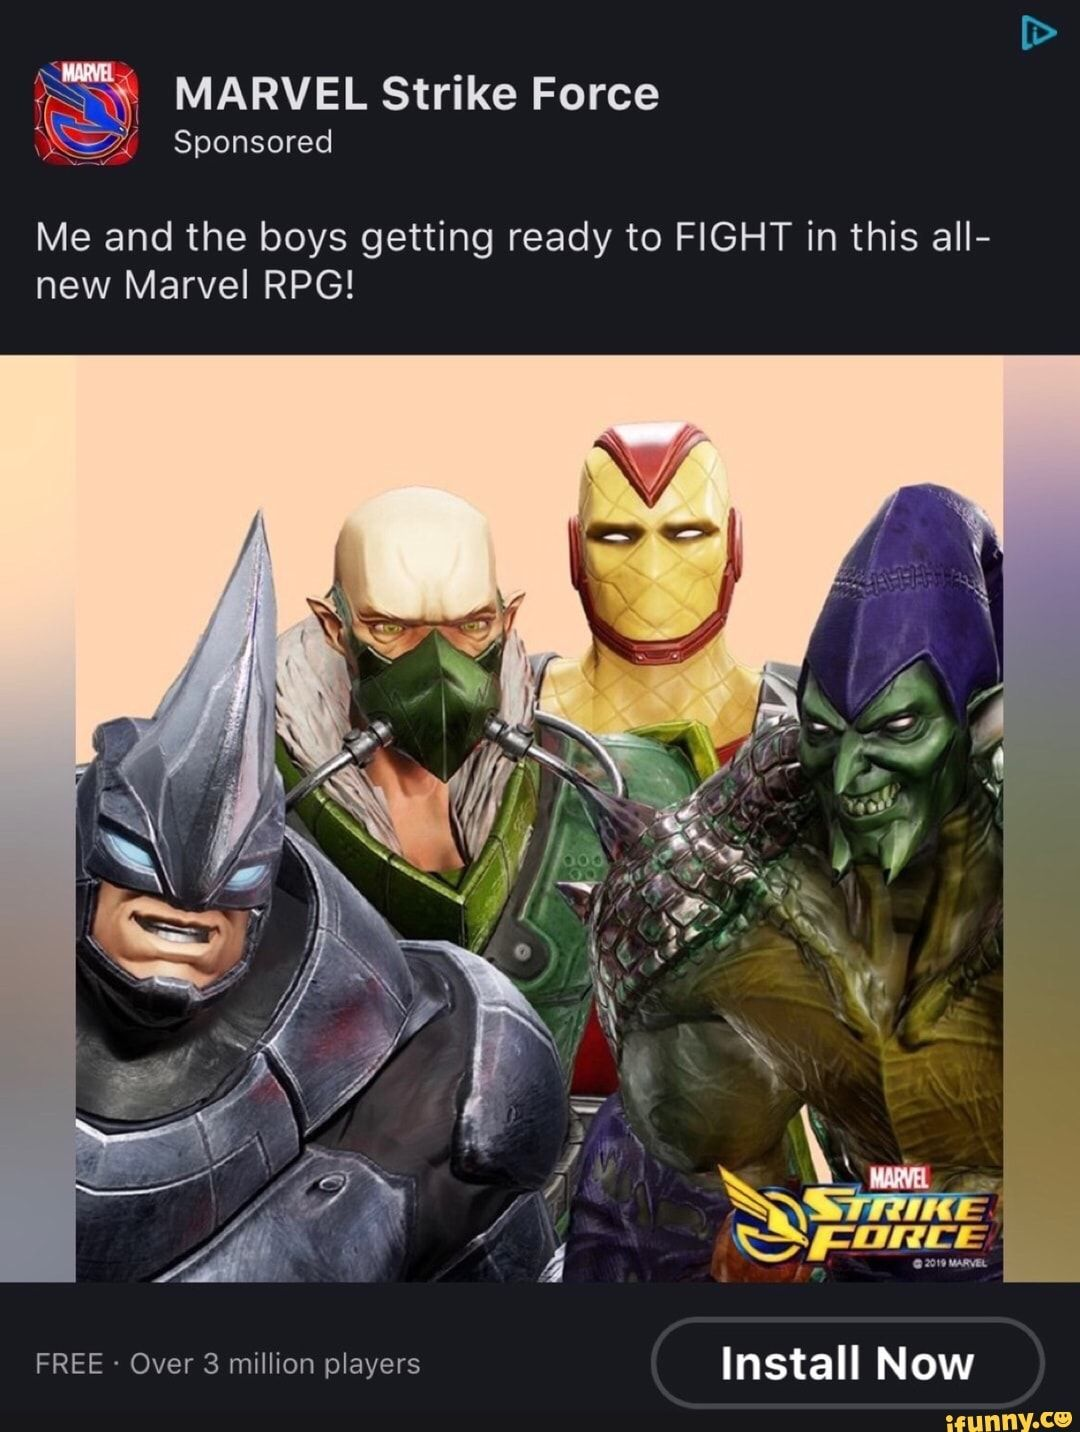 MARVEL Strike Force Me and the boys getting ready to FIGHT